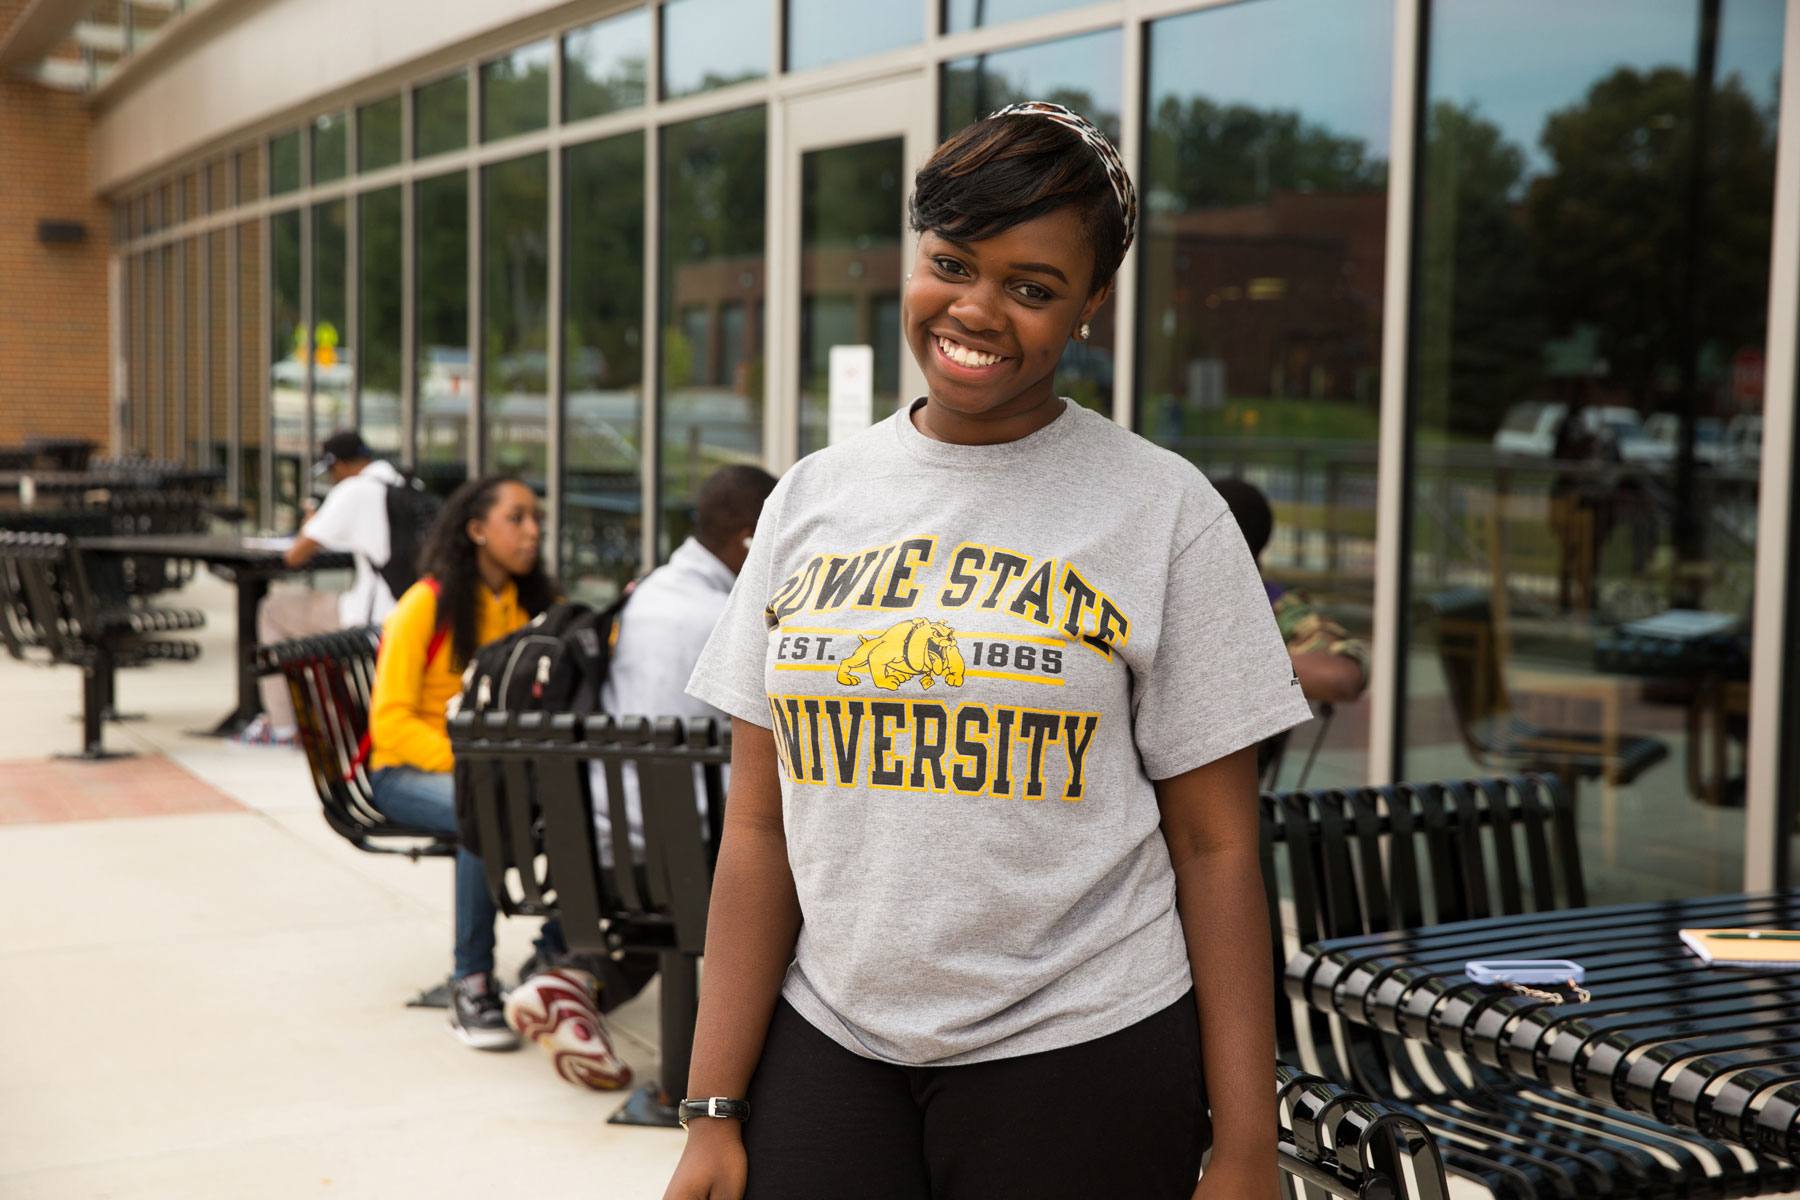 Bowie State University Off-Campus Housing 101